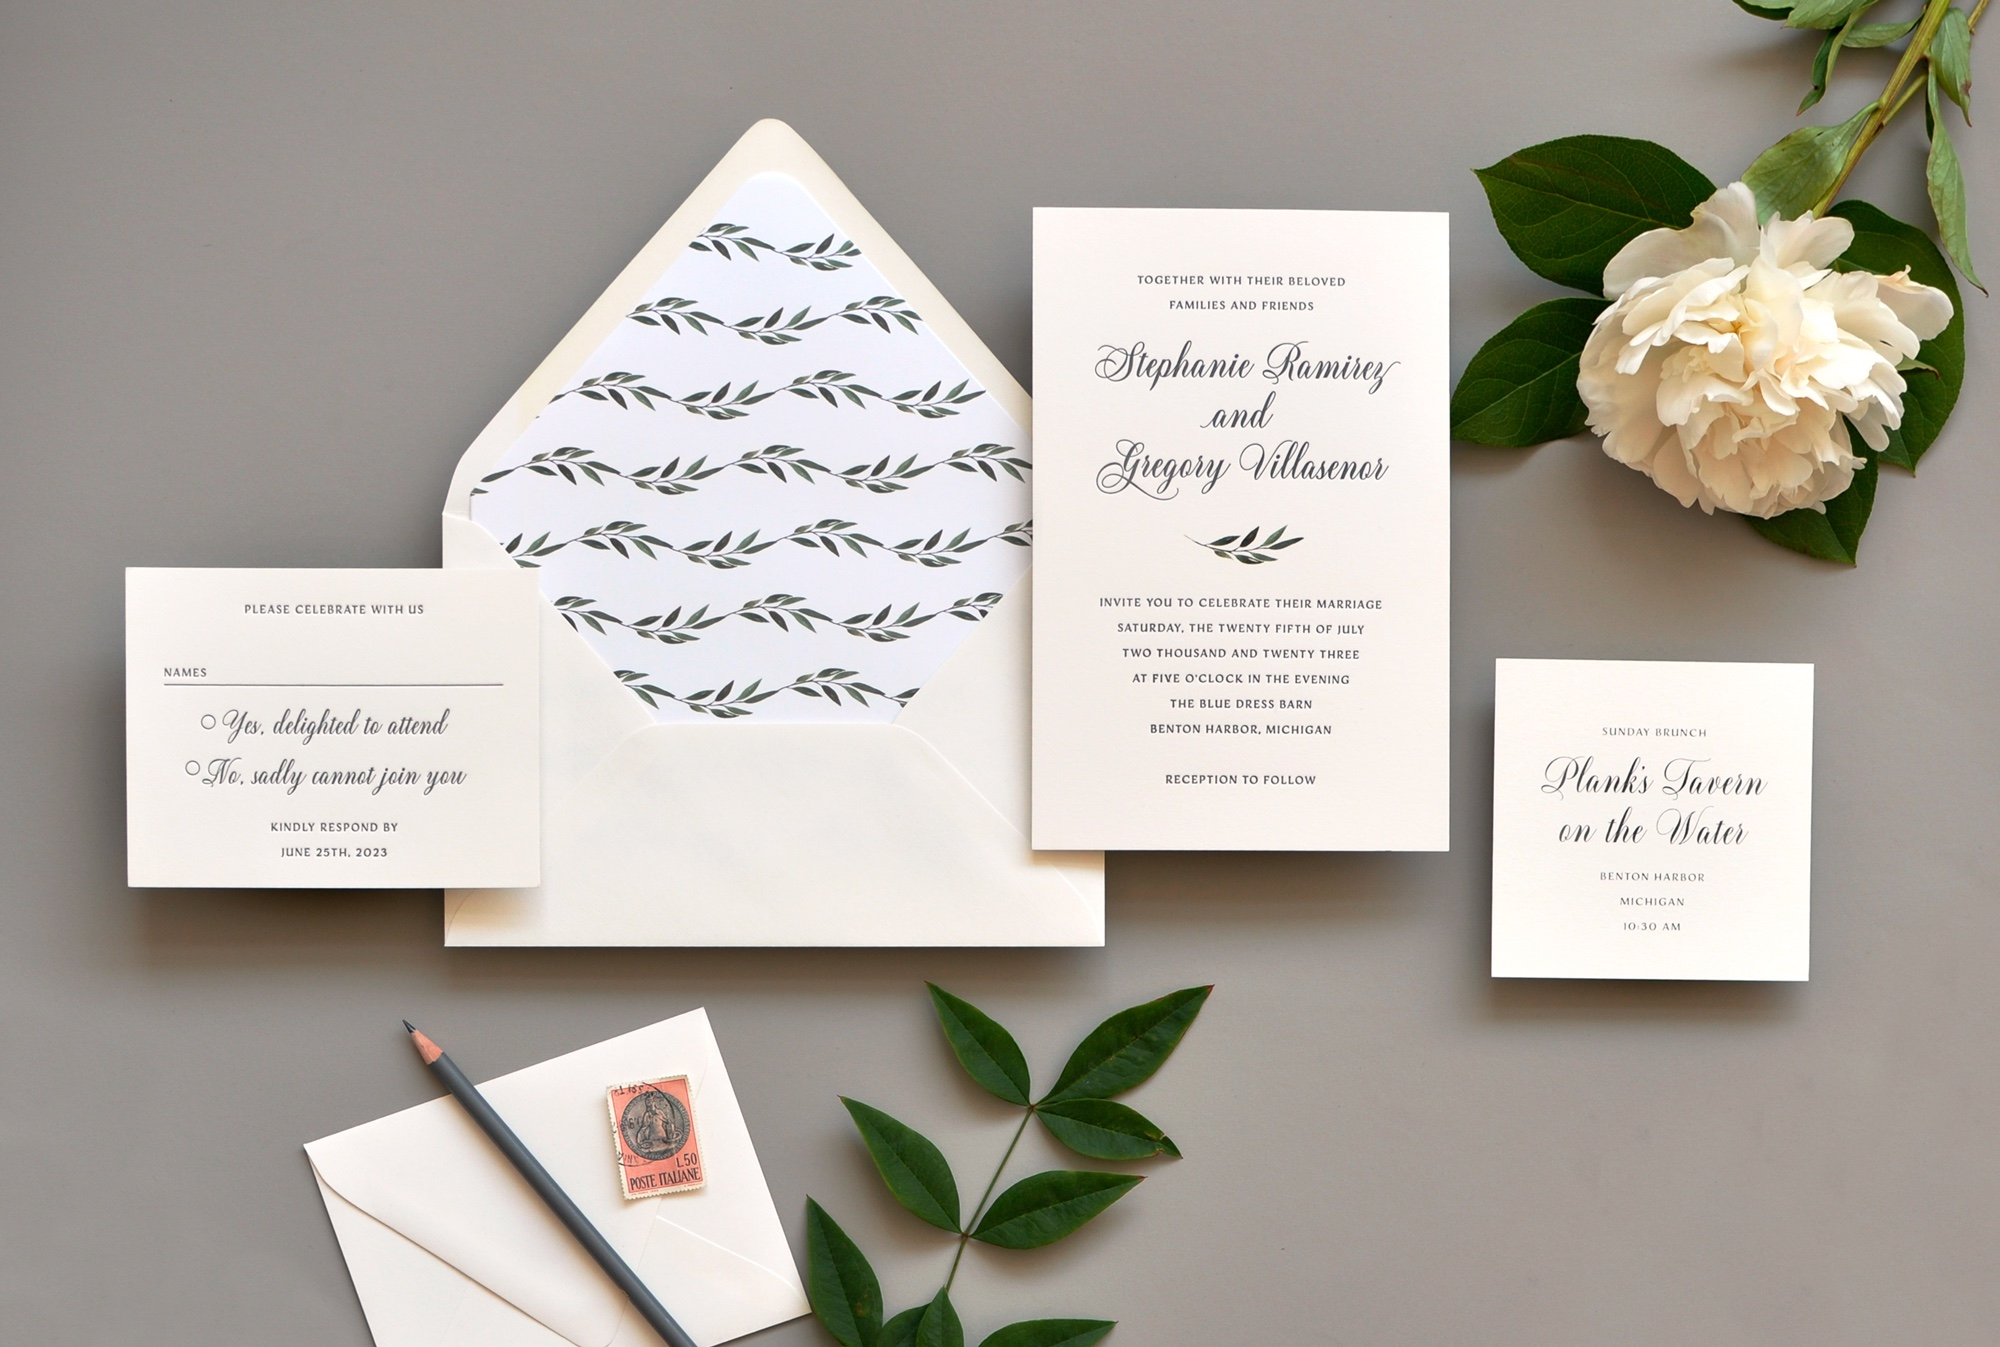 Botanical letterpress wedding invitations in Northern Virginia, Washington DC, and Maryland.